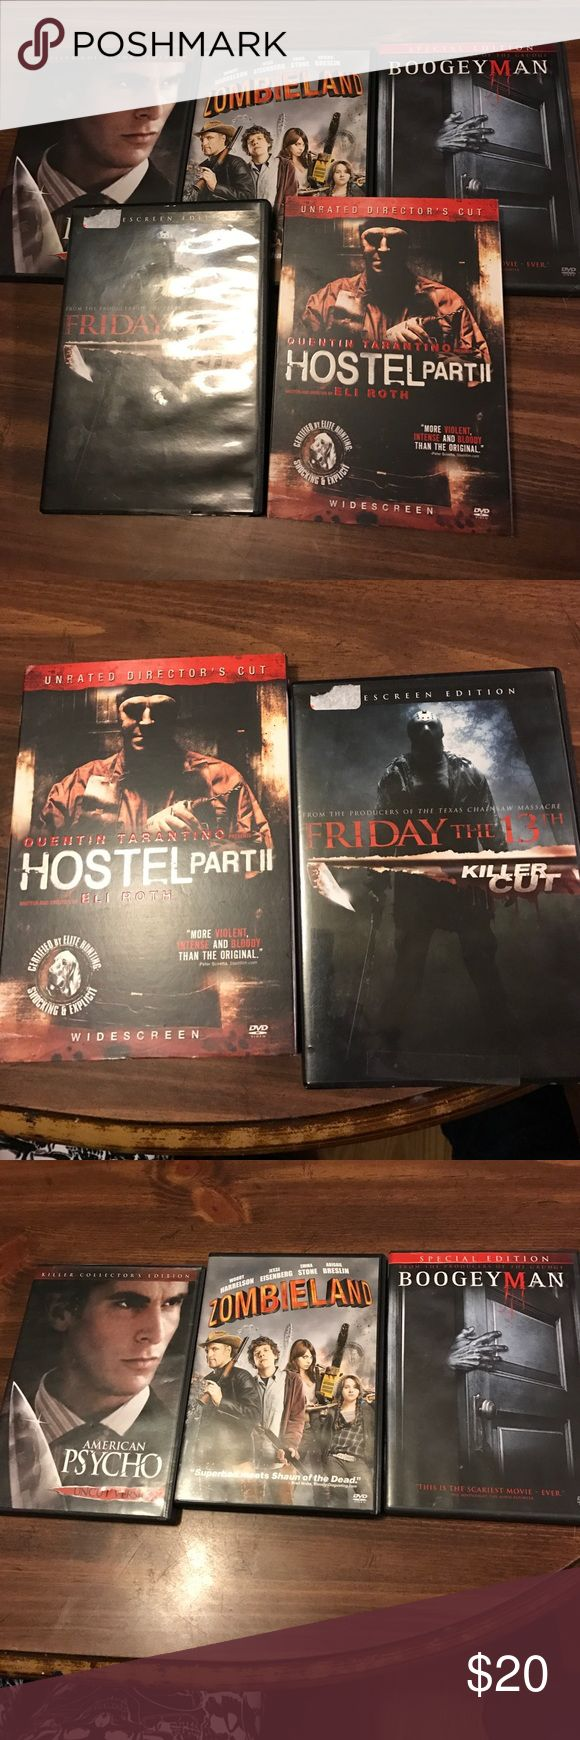 Scary movie lot/bundle DVD scary movie lot/ bundle includes 5 movies,   Friday the 13th killer cut, Hostel part 2, American Psycho uncut, Boogeyman and Zombieland Other